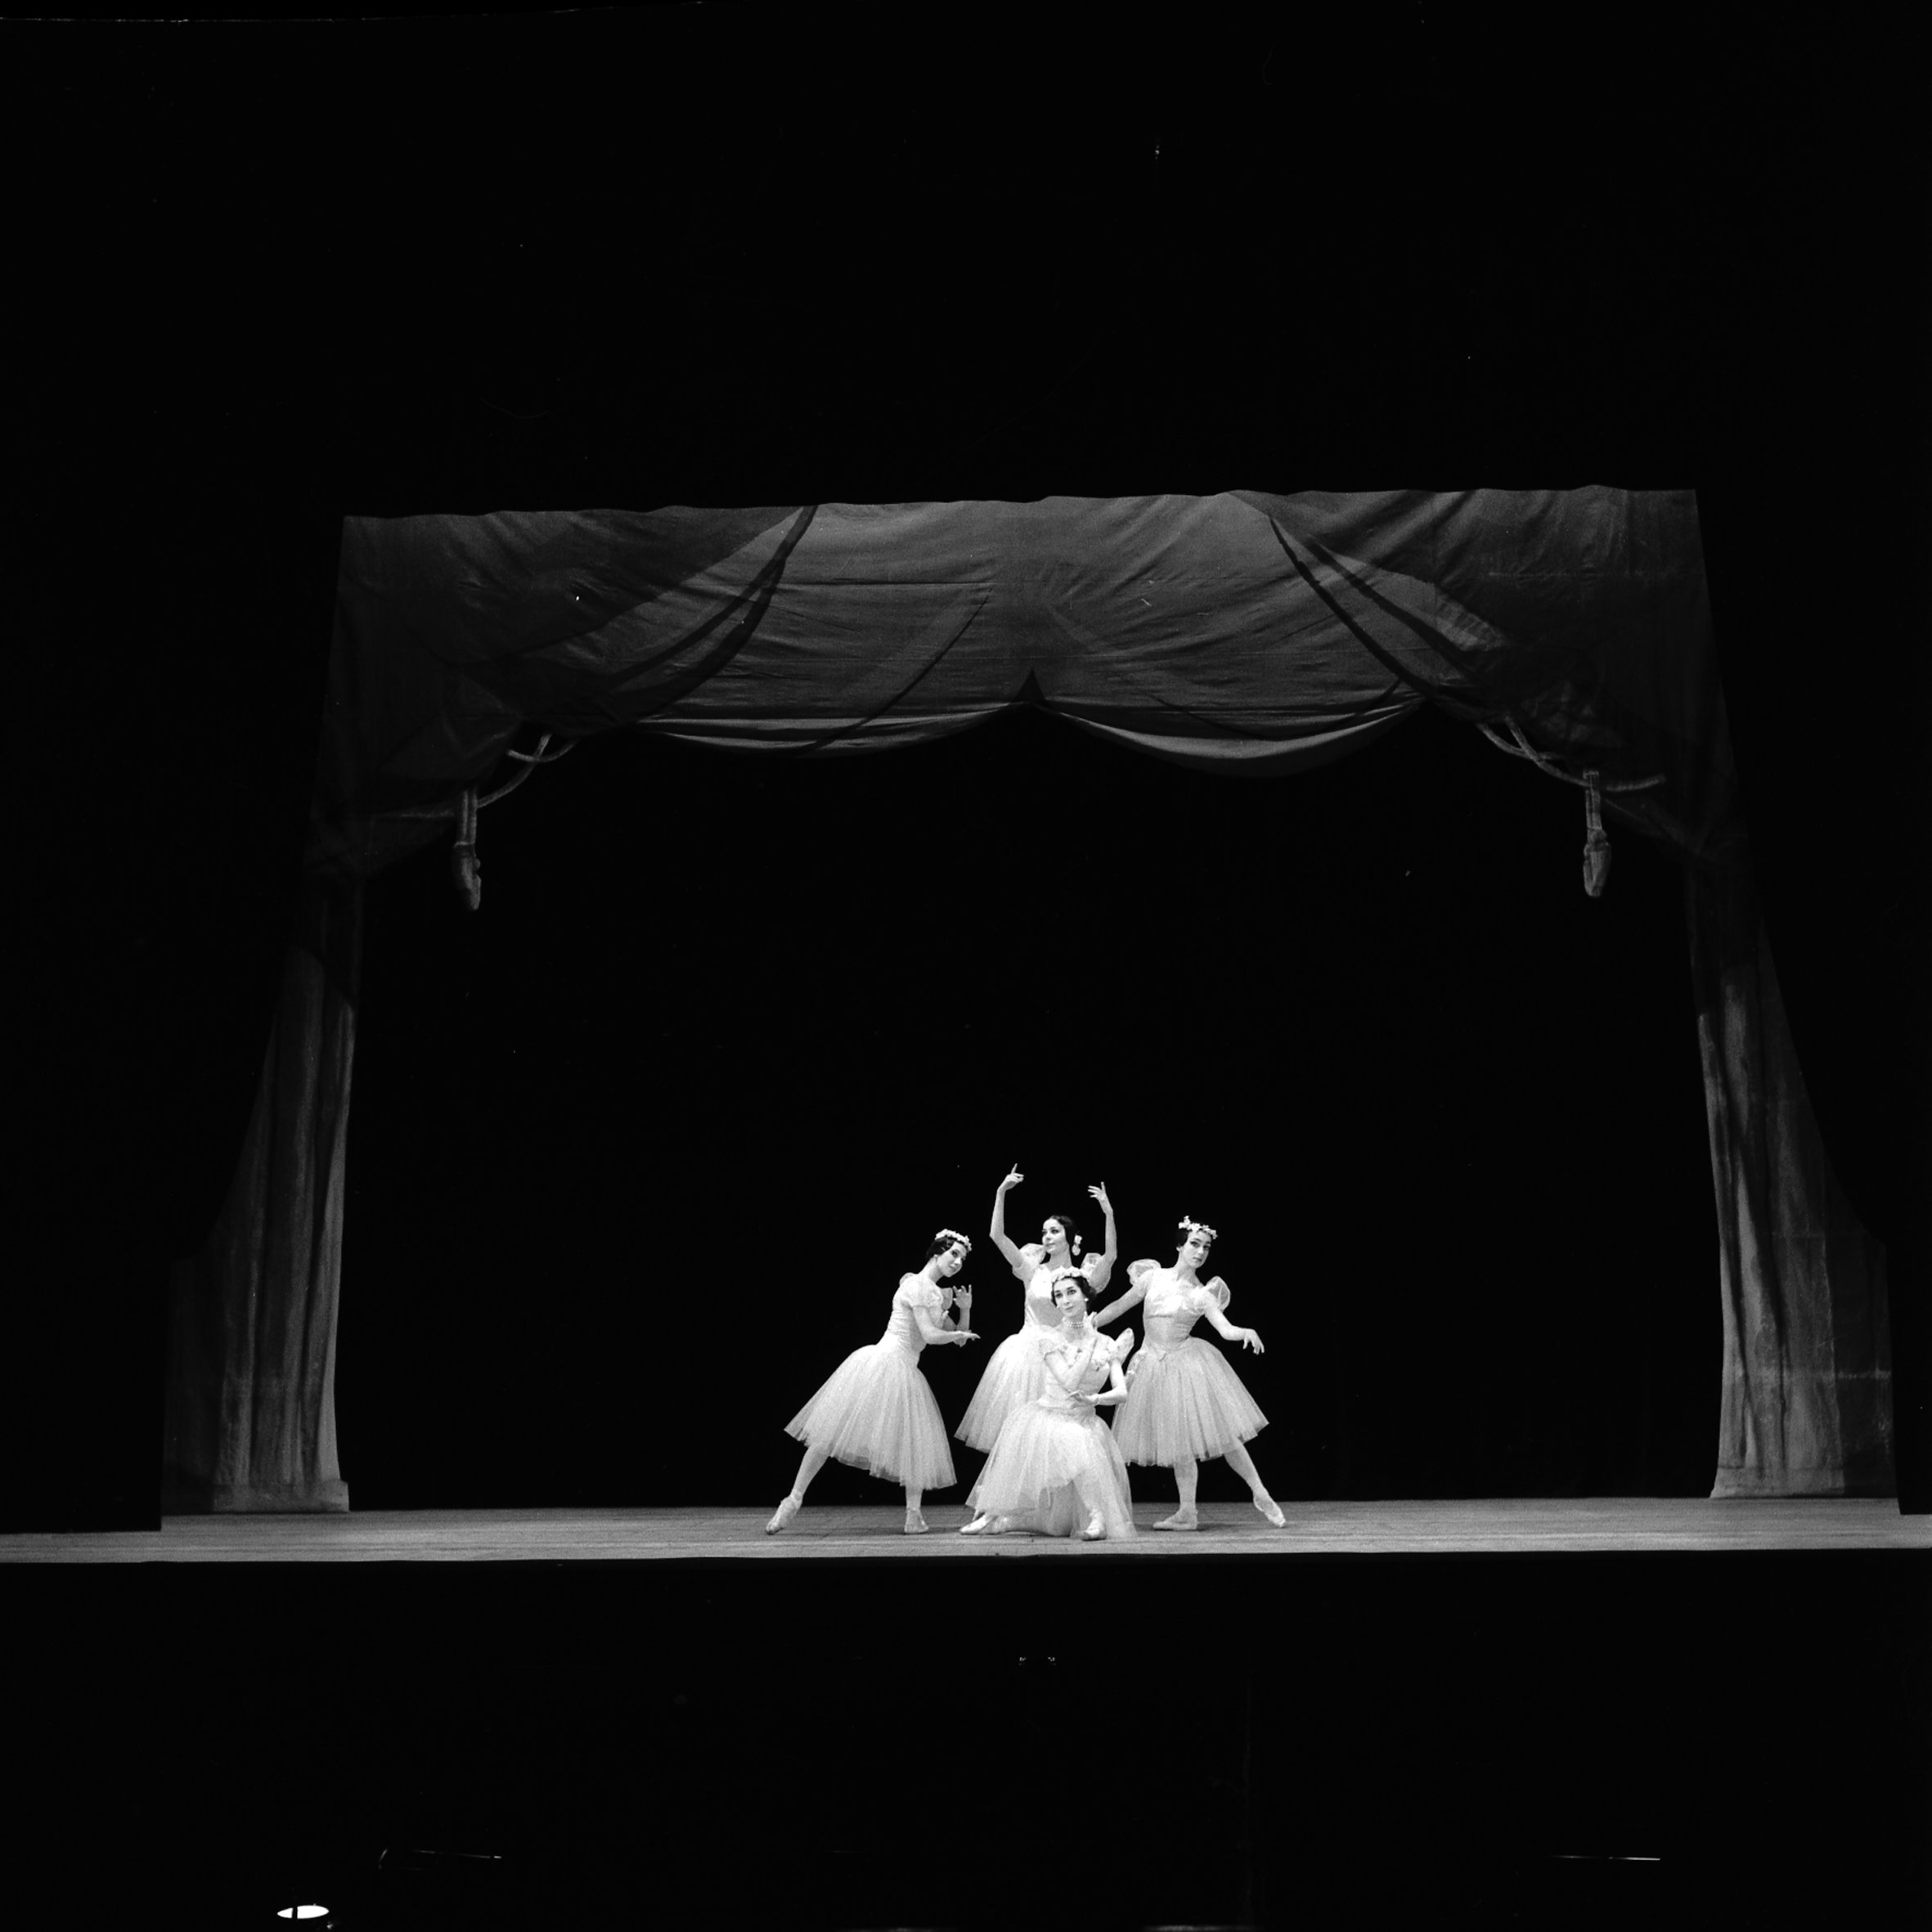 File 20 03 1968 Decor Et Spectacle De Ballet 1968 53fi3809 Jpg